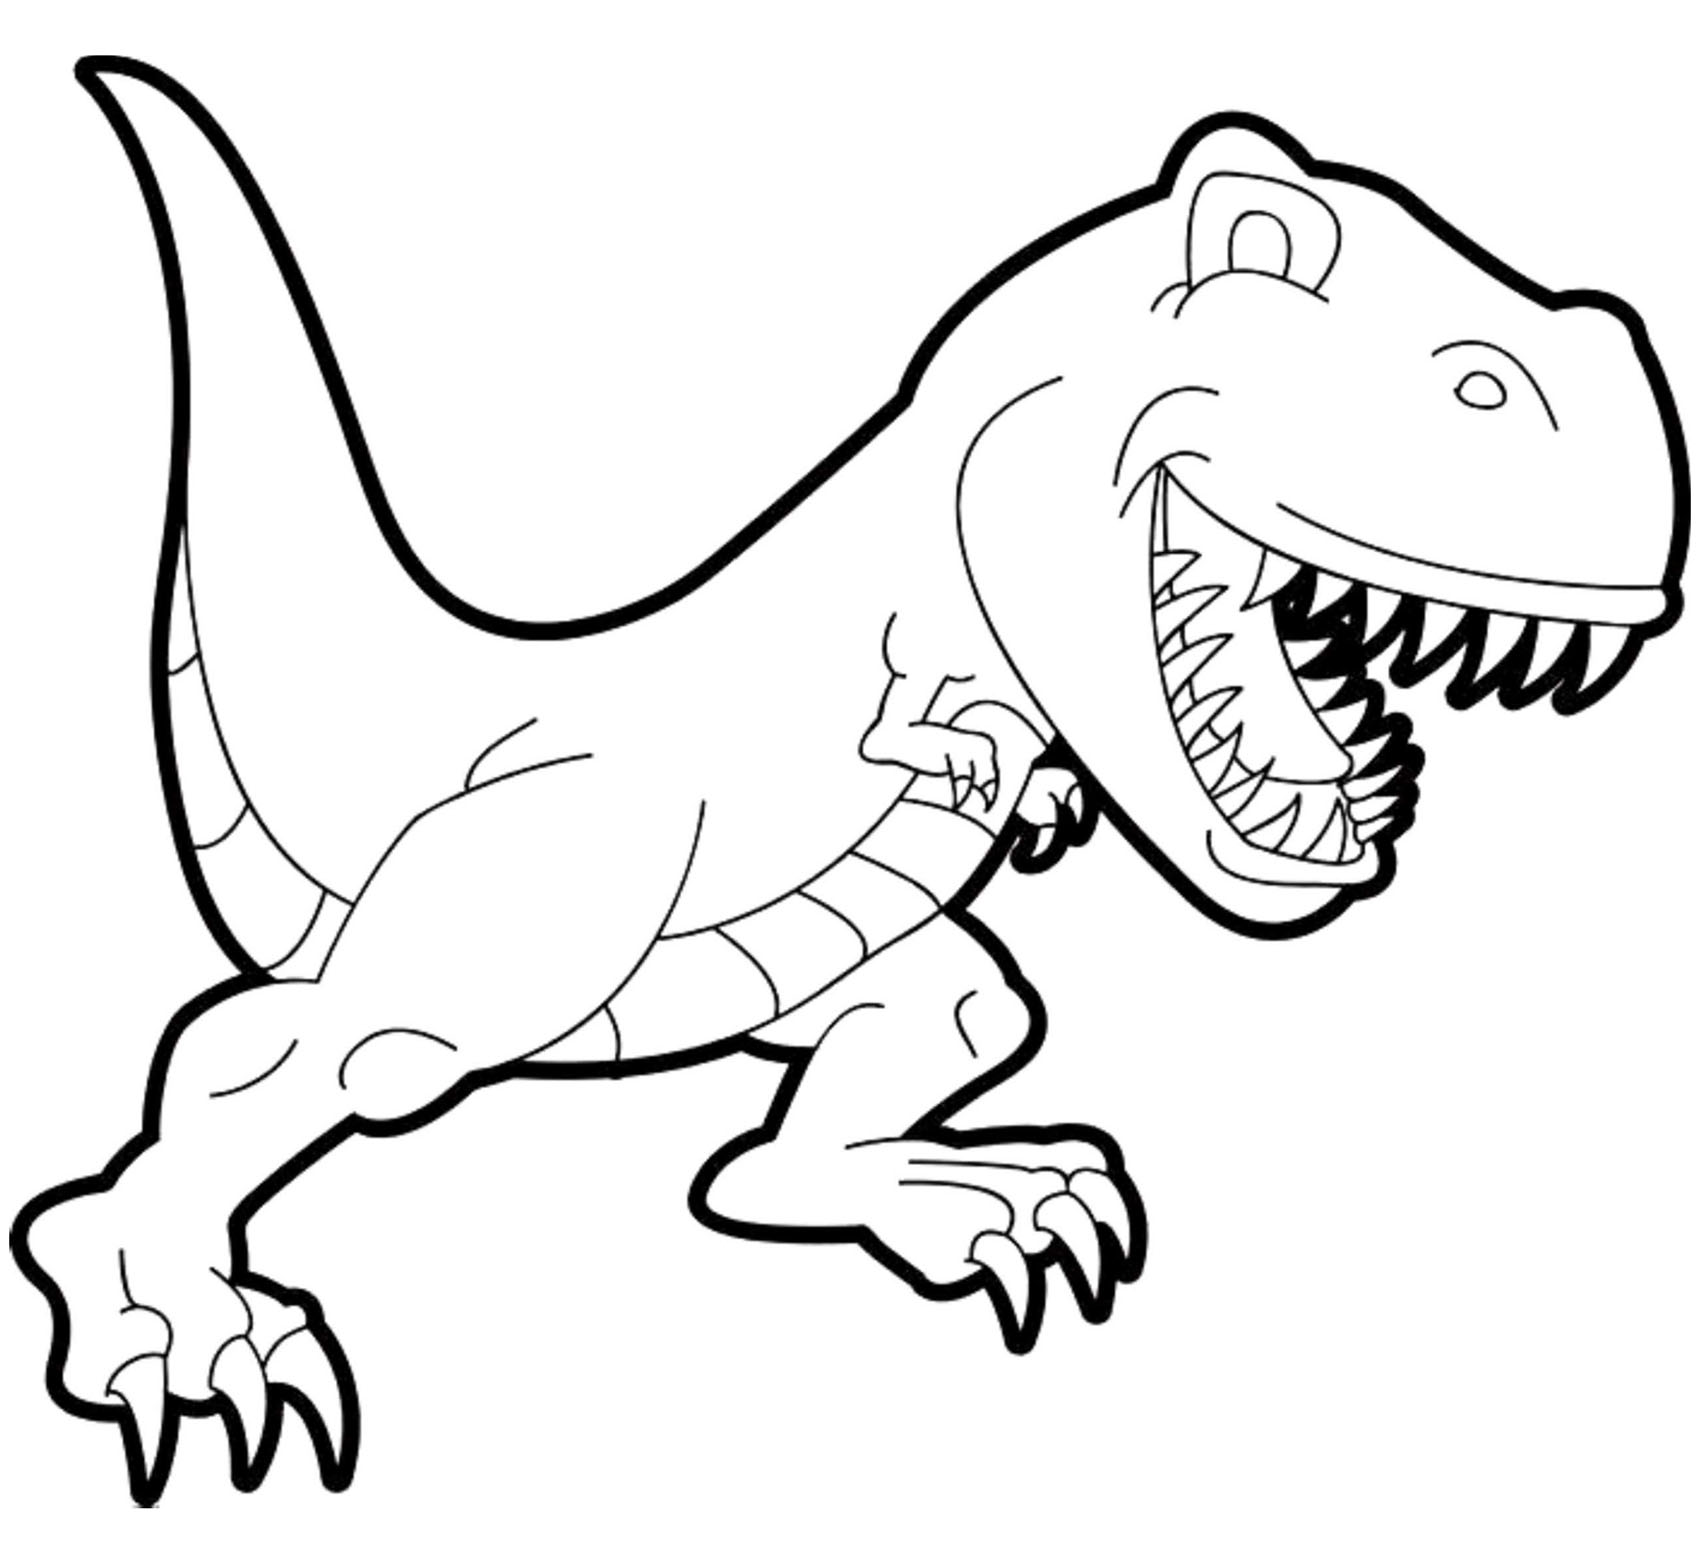 dinosaur printout coloring pages dinosaur free printable coloring pages printout dinosaur 1 1